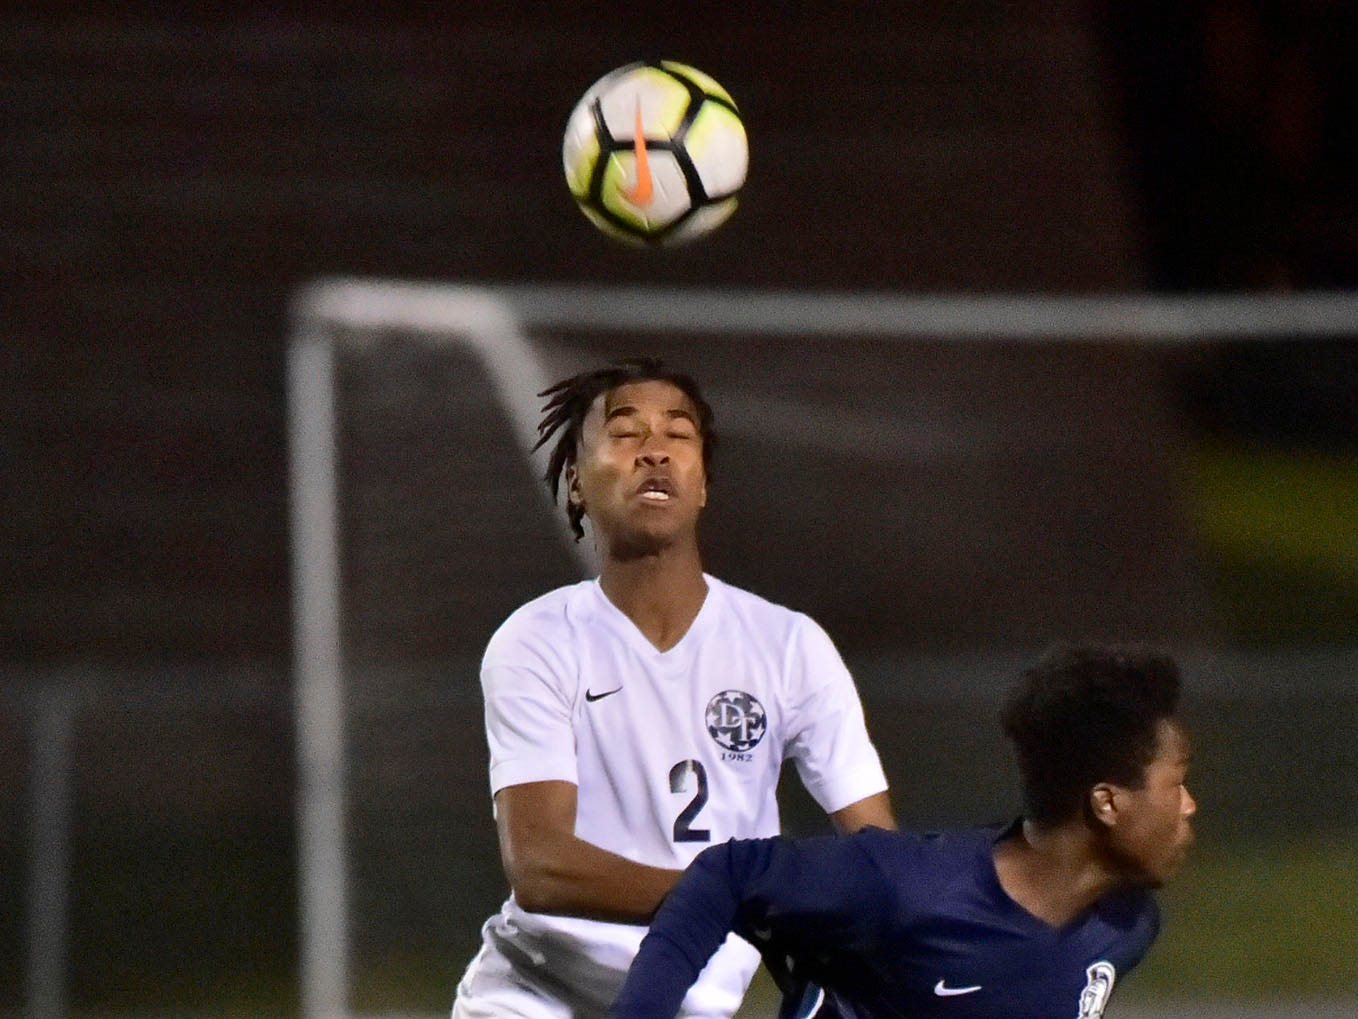 Jaiden Lisbon (2) of Dallastown heads the ball in front of Terrell Samuels of Chambersburg. Chambersburg lost a first round D3 soccer match to Dallastown 2-1 on Tuesday, Oct. 23, 2018.